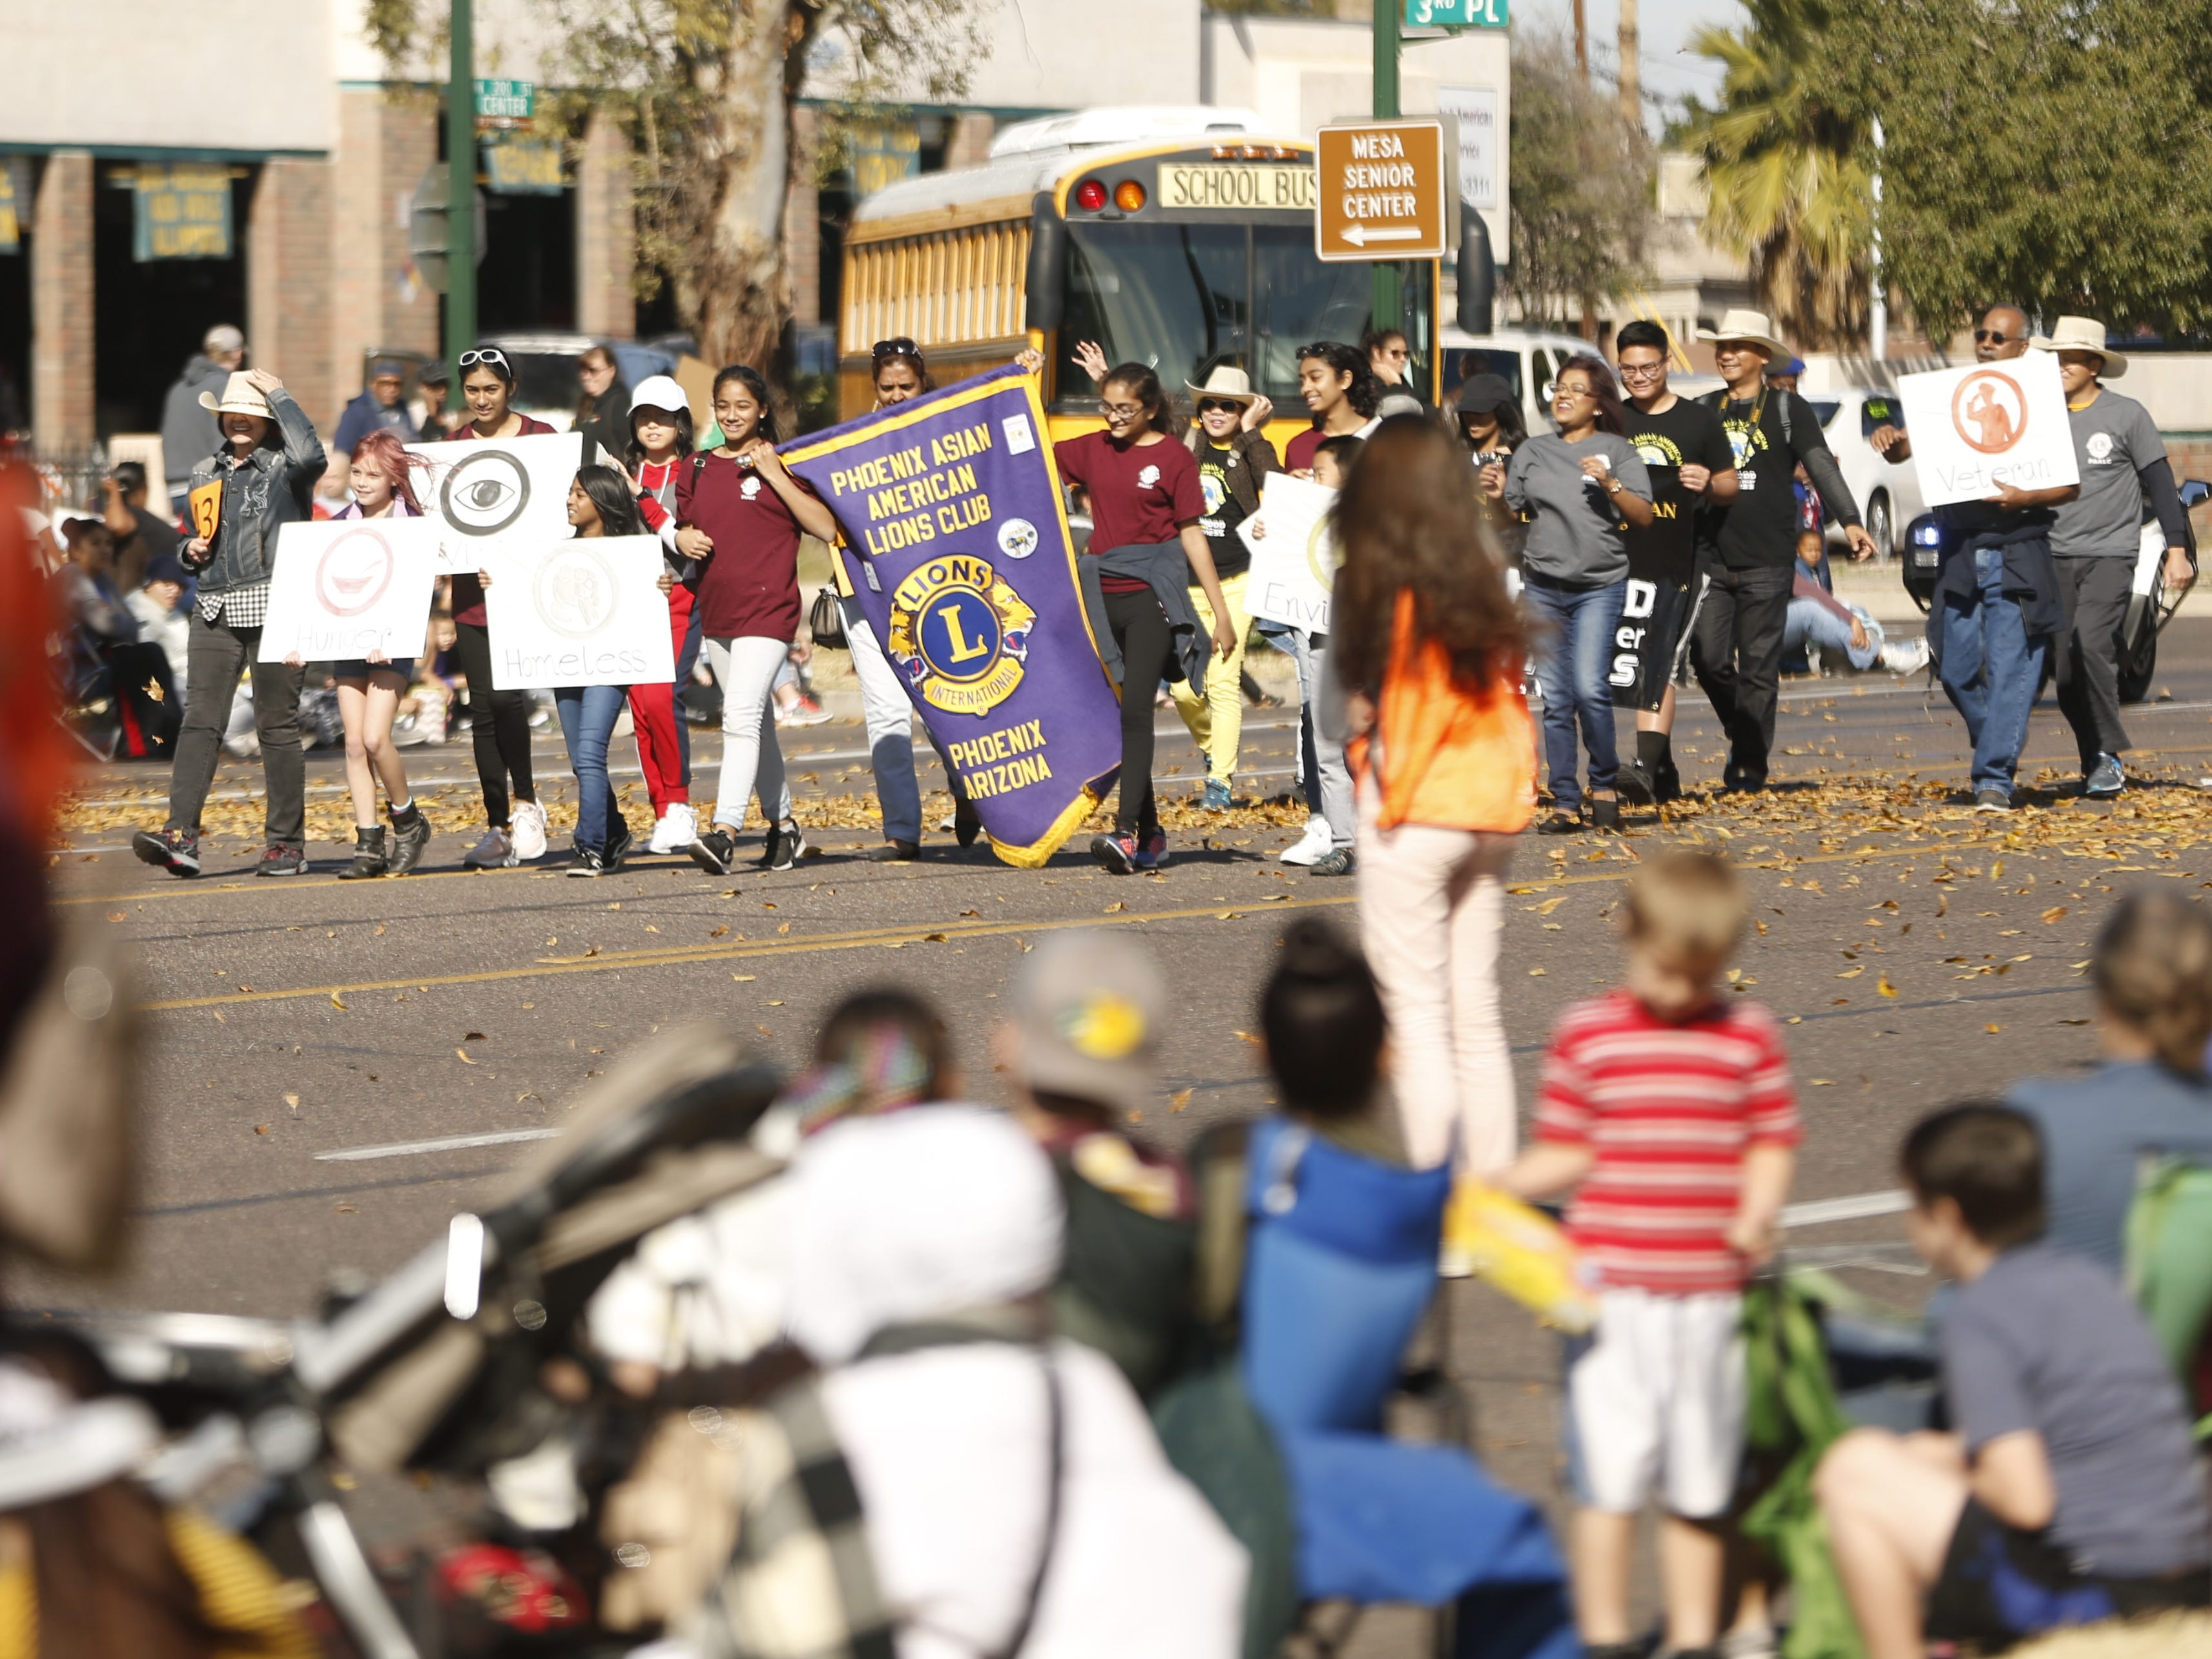 Phoenix Asian American Lion's Club waves at people on the side during the MLK Day Parade in Mesa, Ariz. on January 21, 2019.